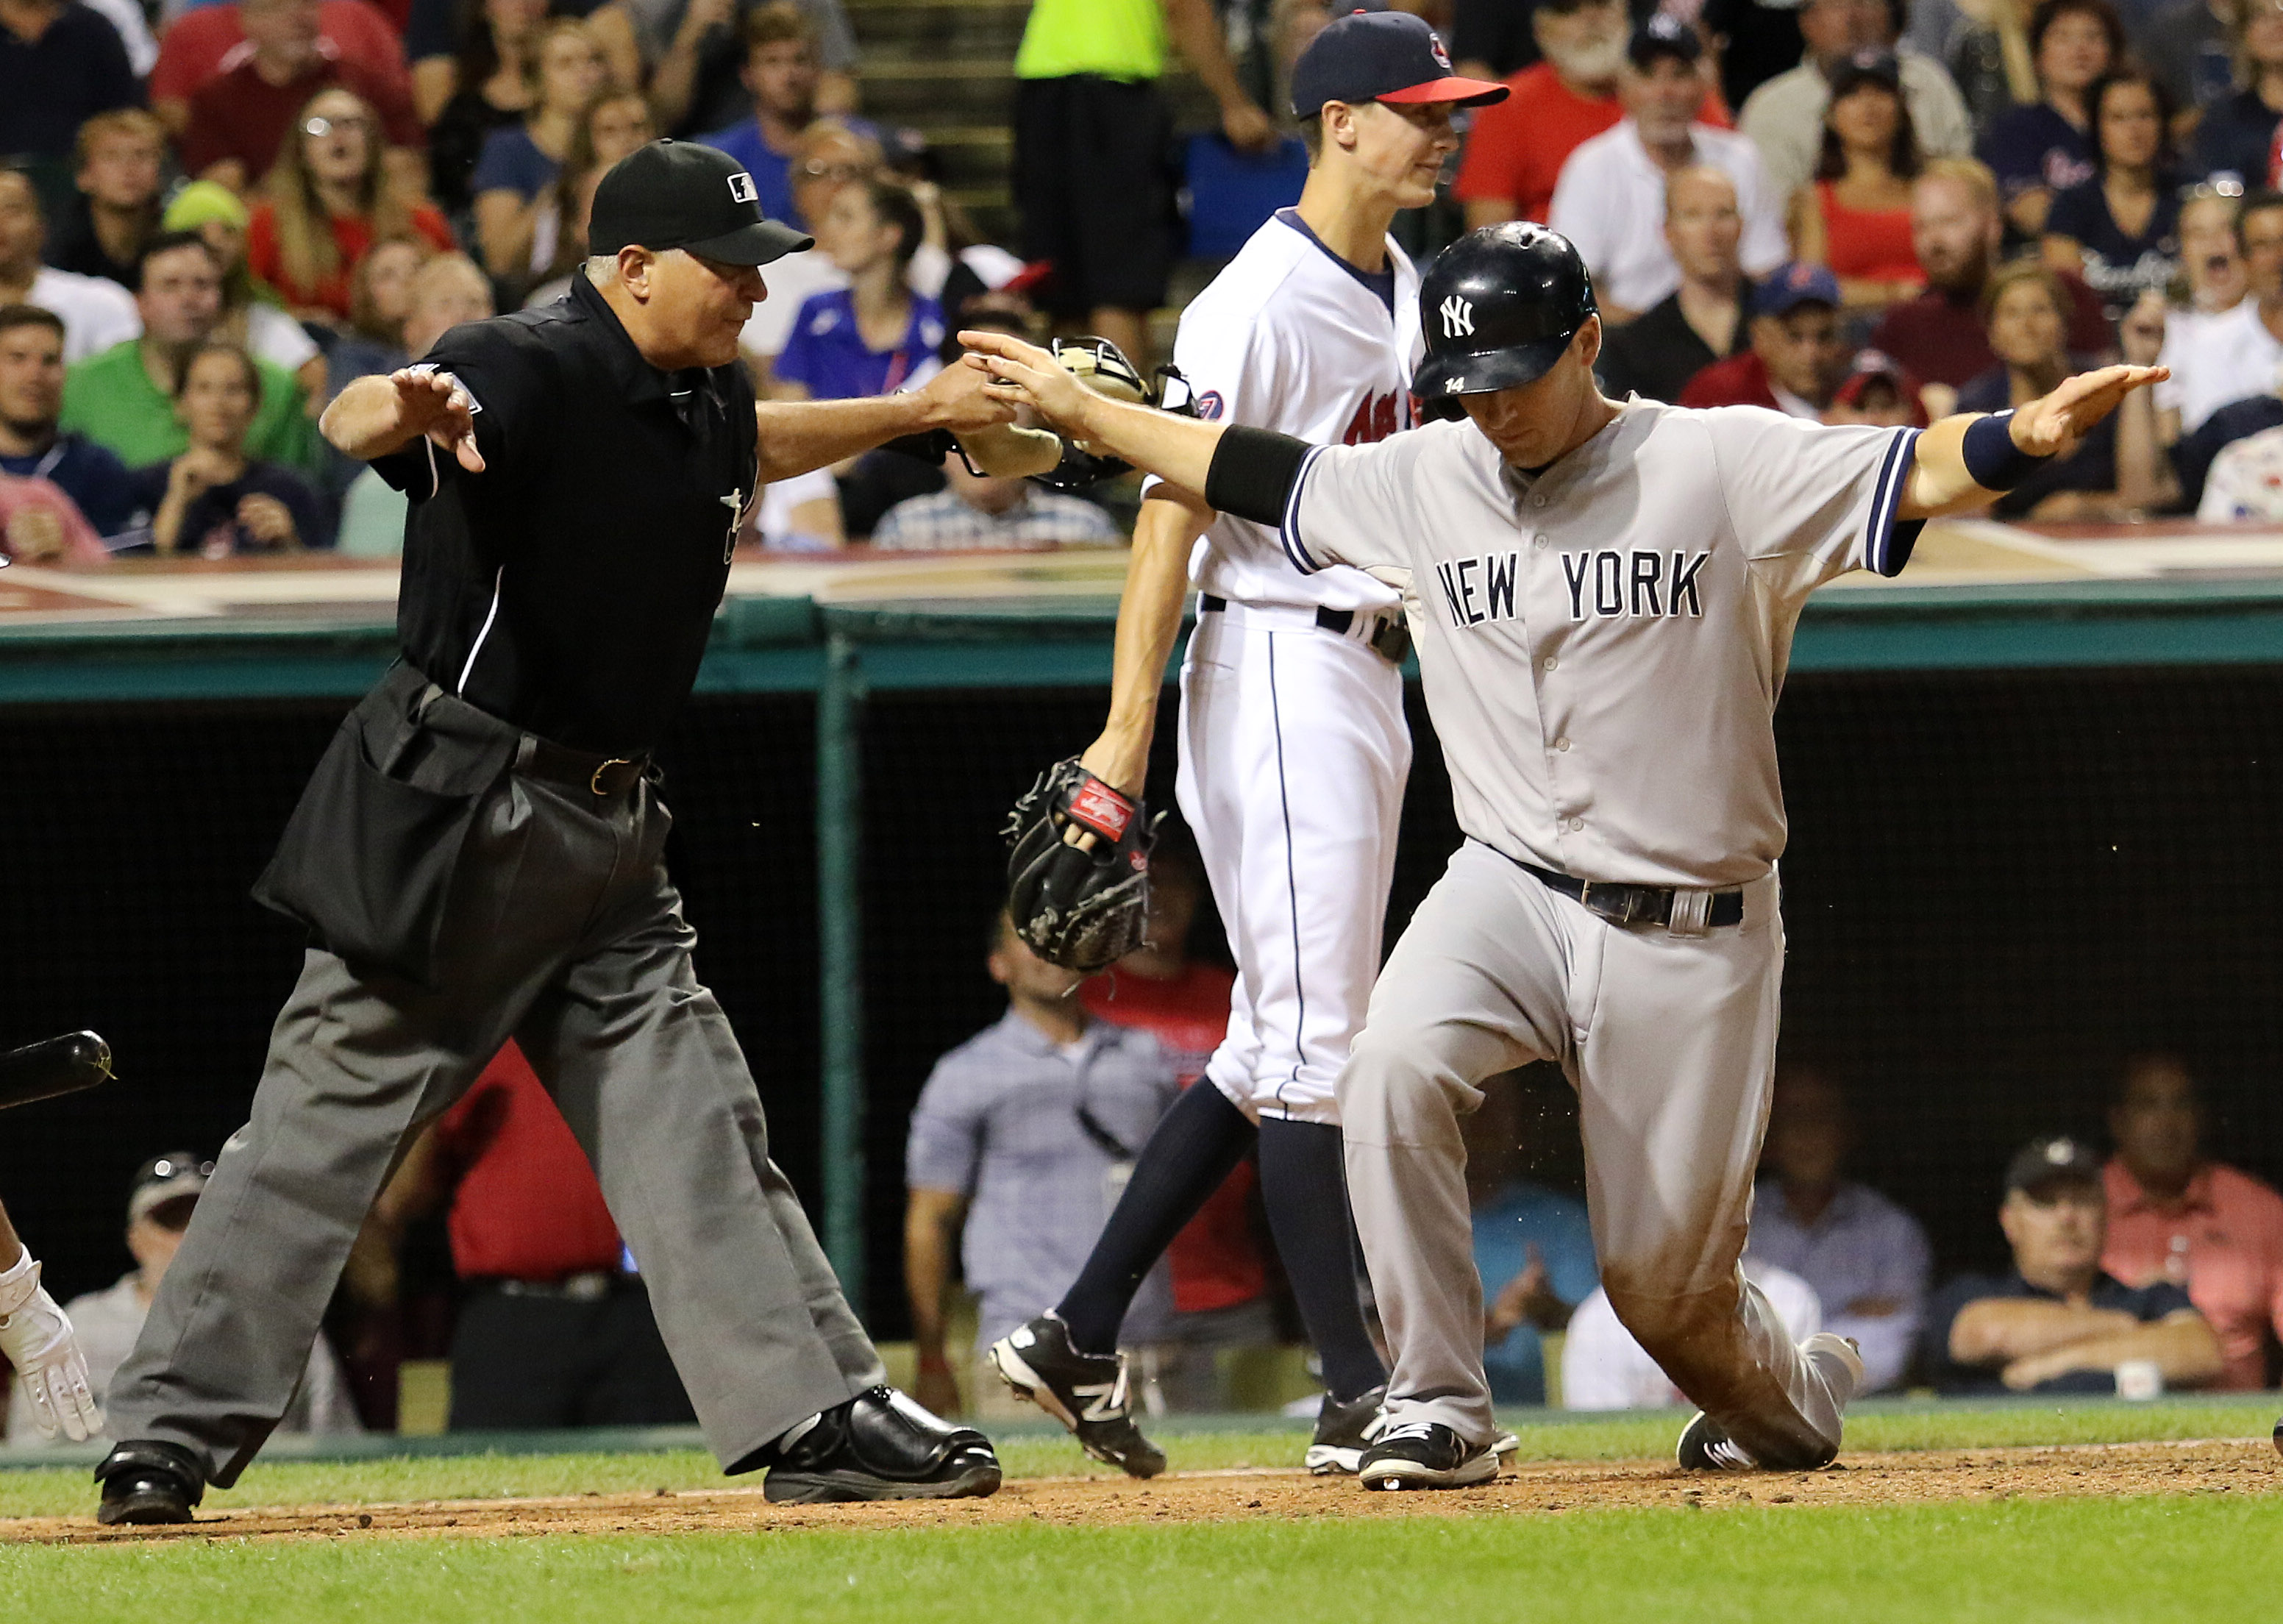 New York Yankees Stephen Drew, right, and  umpire John Hirschbeck both signal that Drew is safe, after he scored on a single by Brad Gardner duirng the sixth inning of a baseball game against the Cleveland Indians on Thursday, Aug. 13, 2015, in Cleveland.